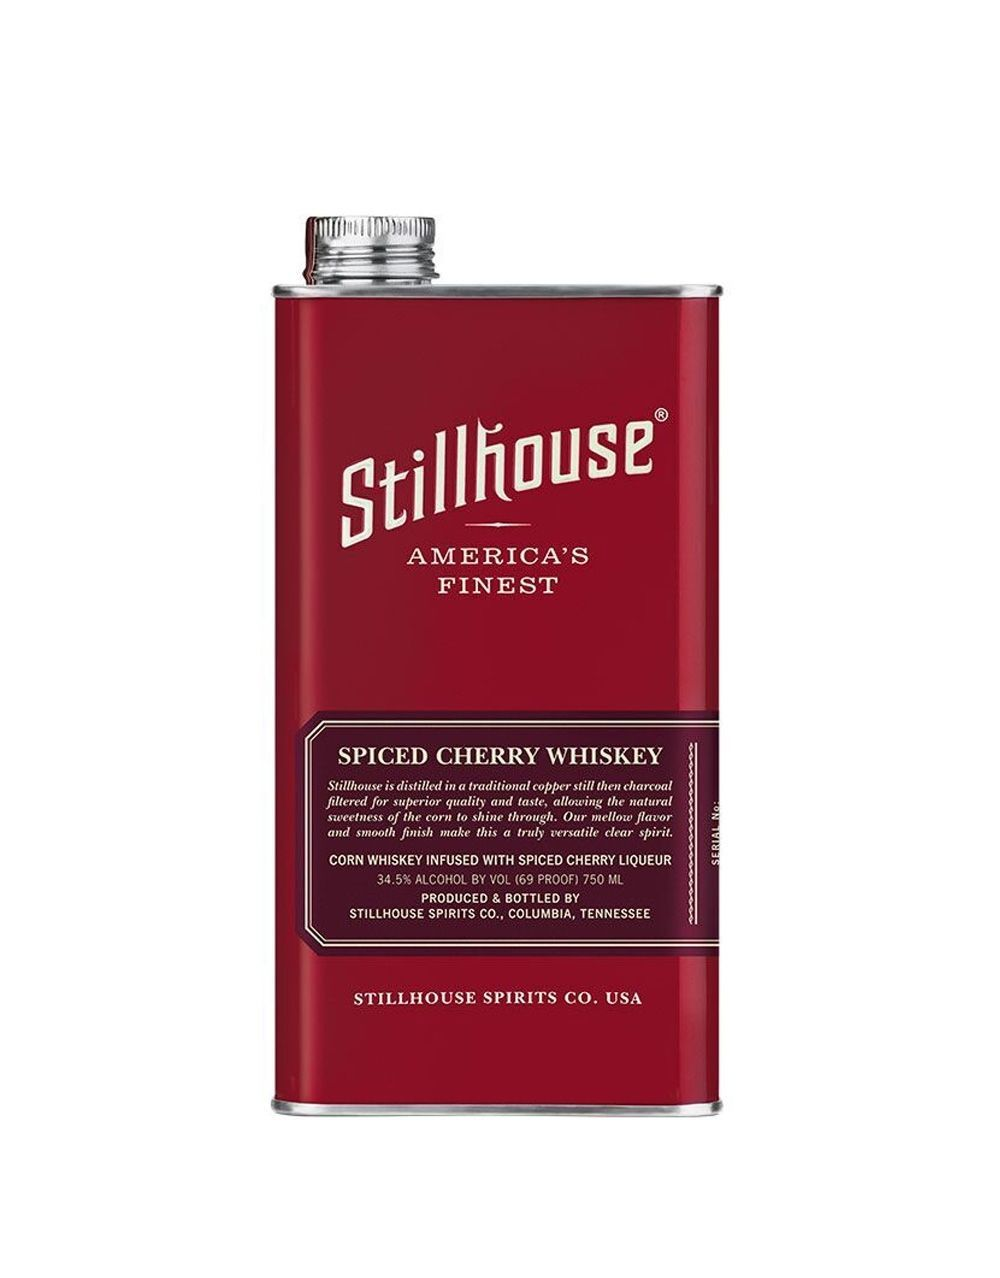 Stillhouse Cherry Whiskey